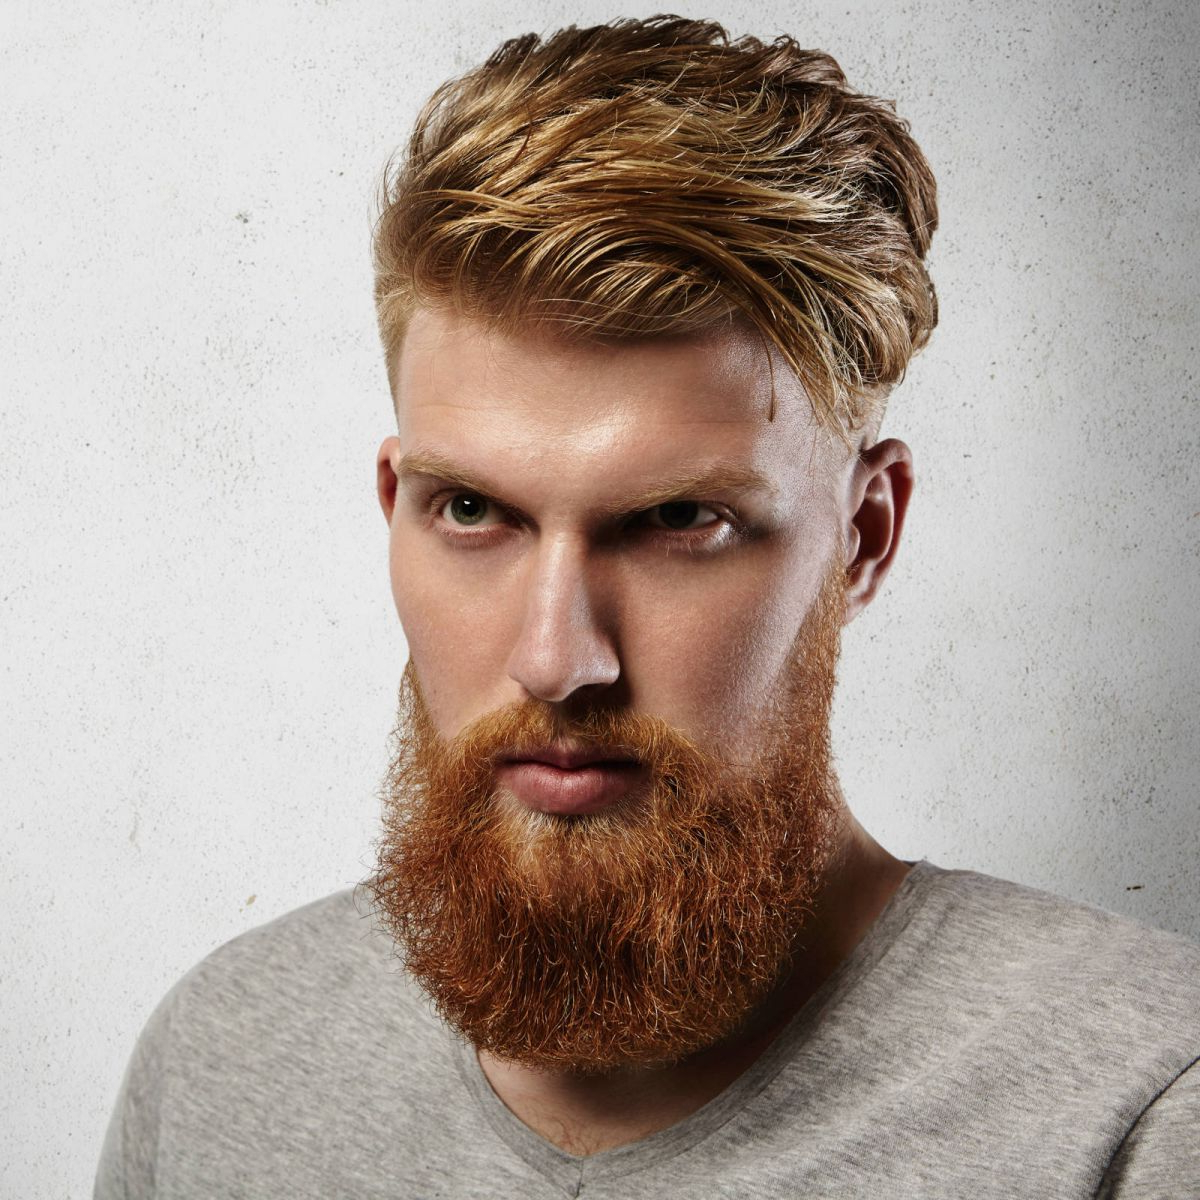 21 Eye Catching Red Hair Men's Hairstyles (Ginger Hairstyles) Pertaining To Tapered Brown Pixie Hairstyles With Ginger Curls (View 16 of 25)